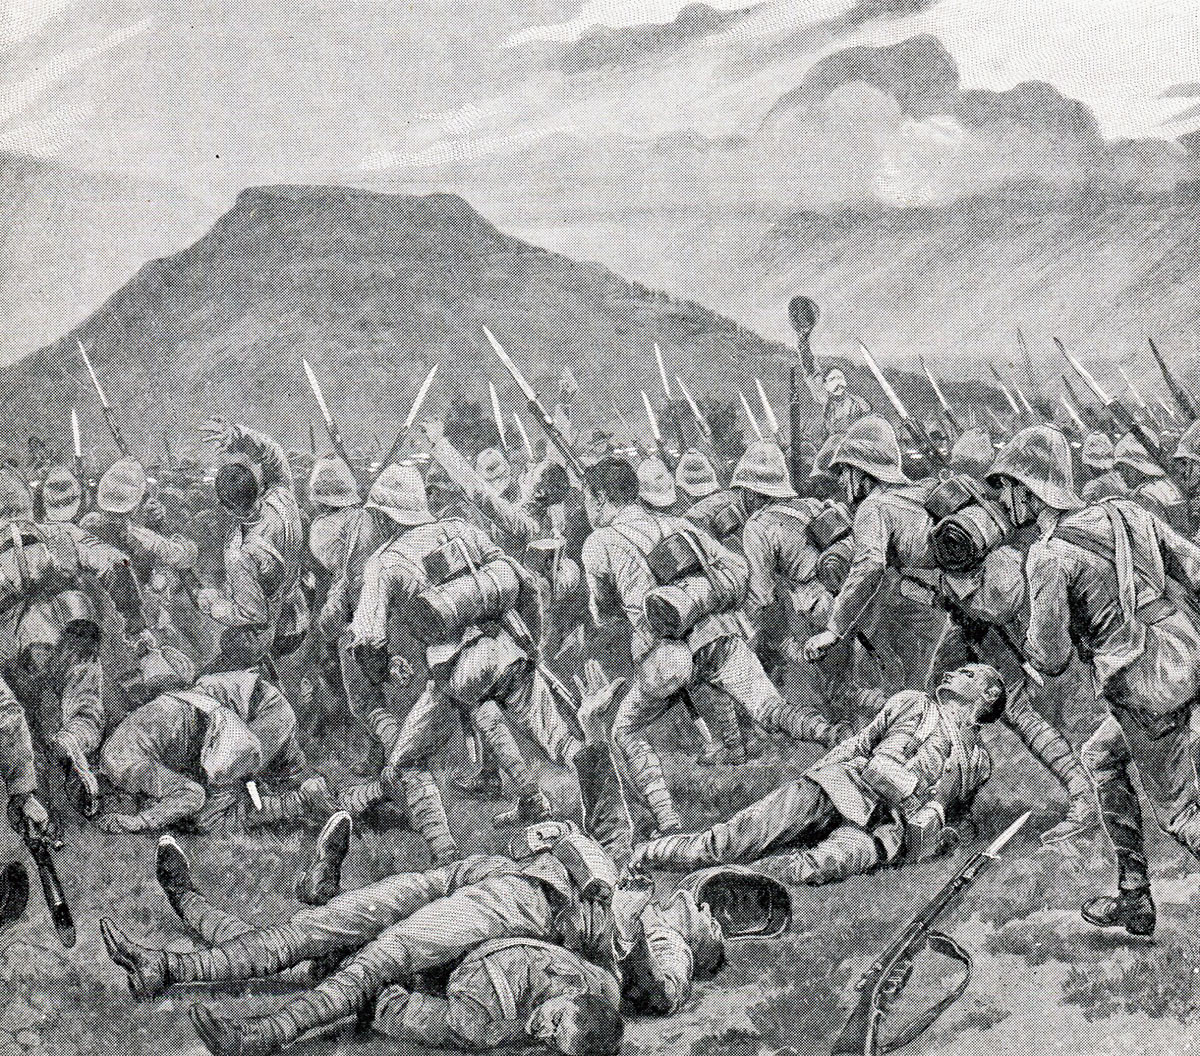 The Devons attacking at Wagon Hill: Siege of Ladysmith, 2nd November 1899 to 27th February 1900 in the Great Boer War